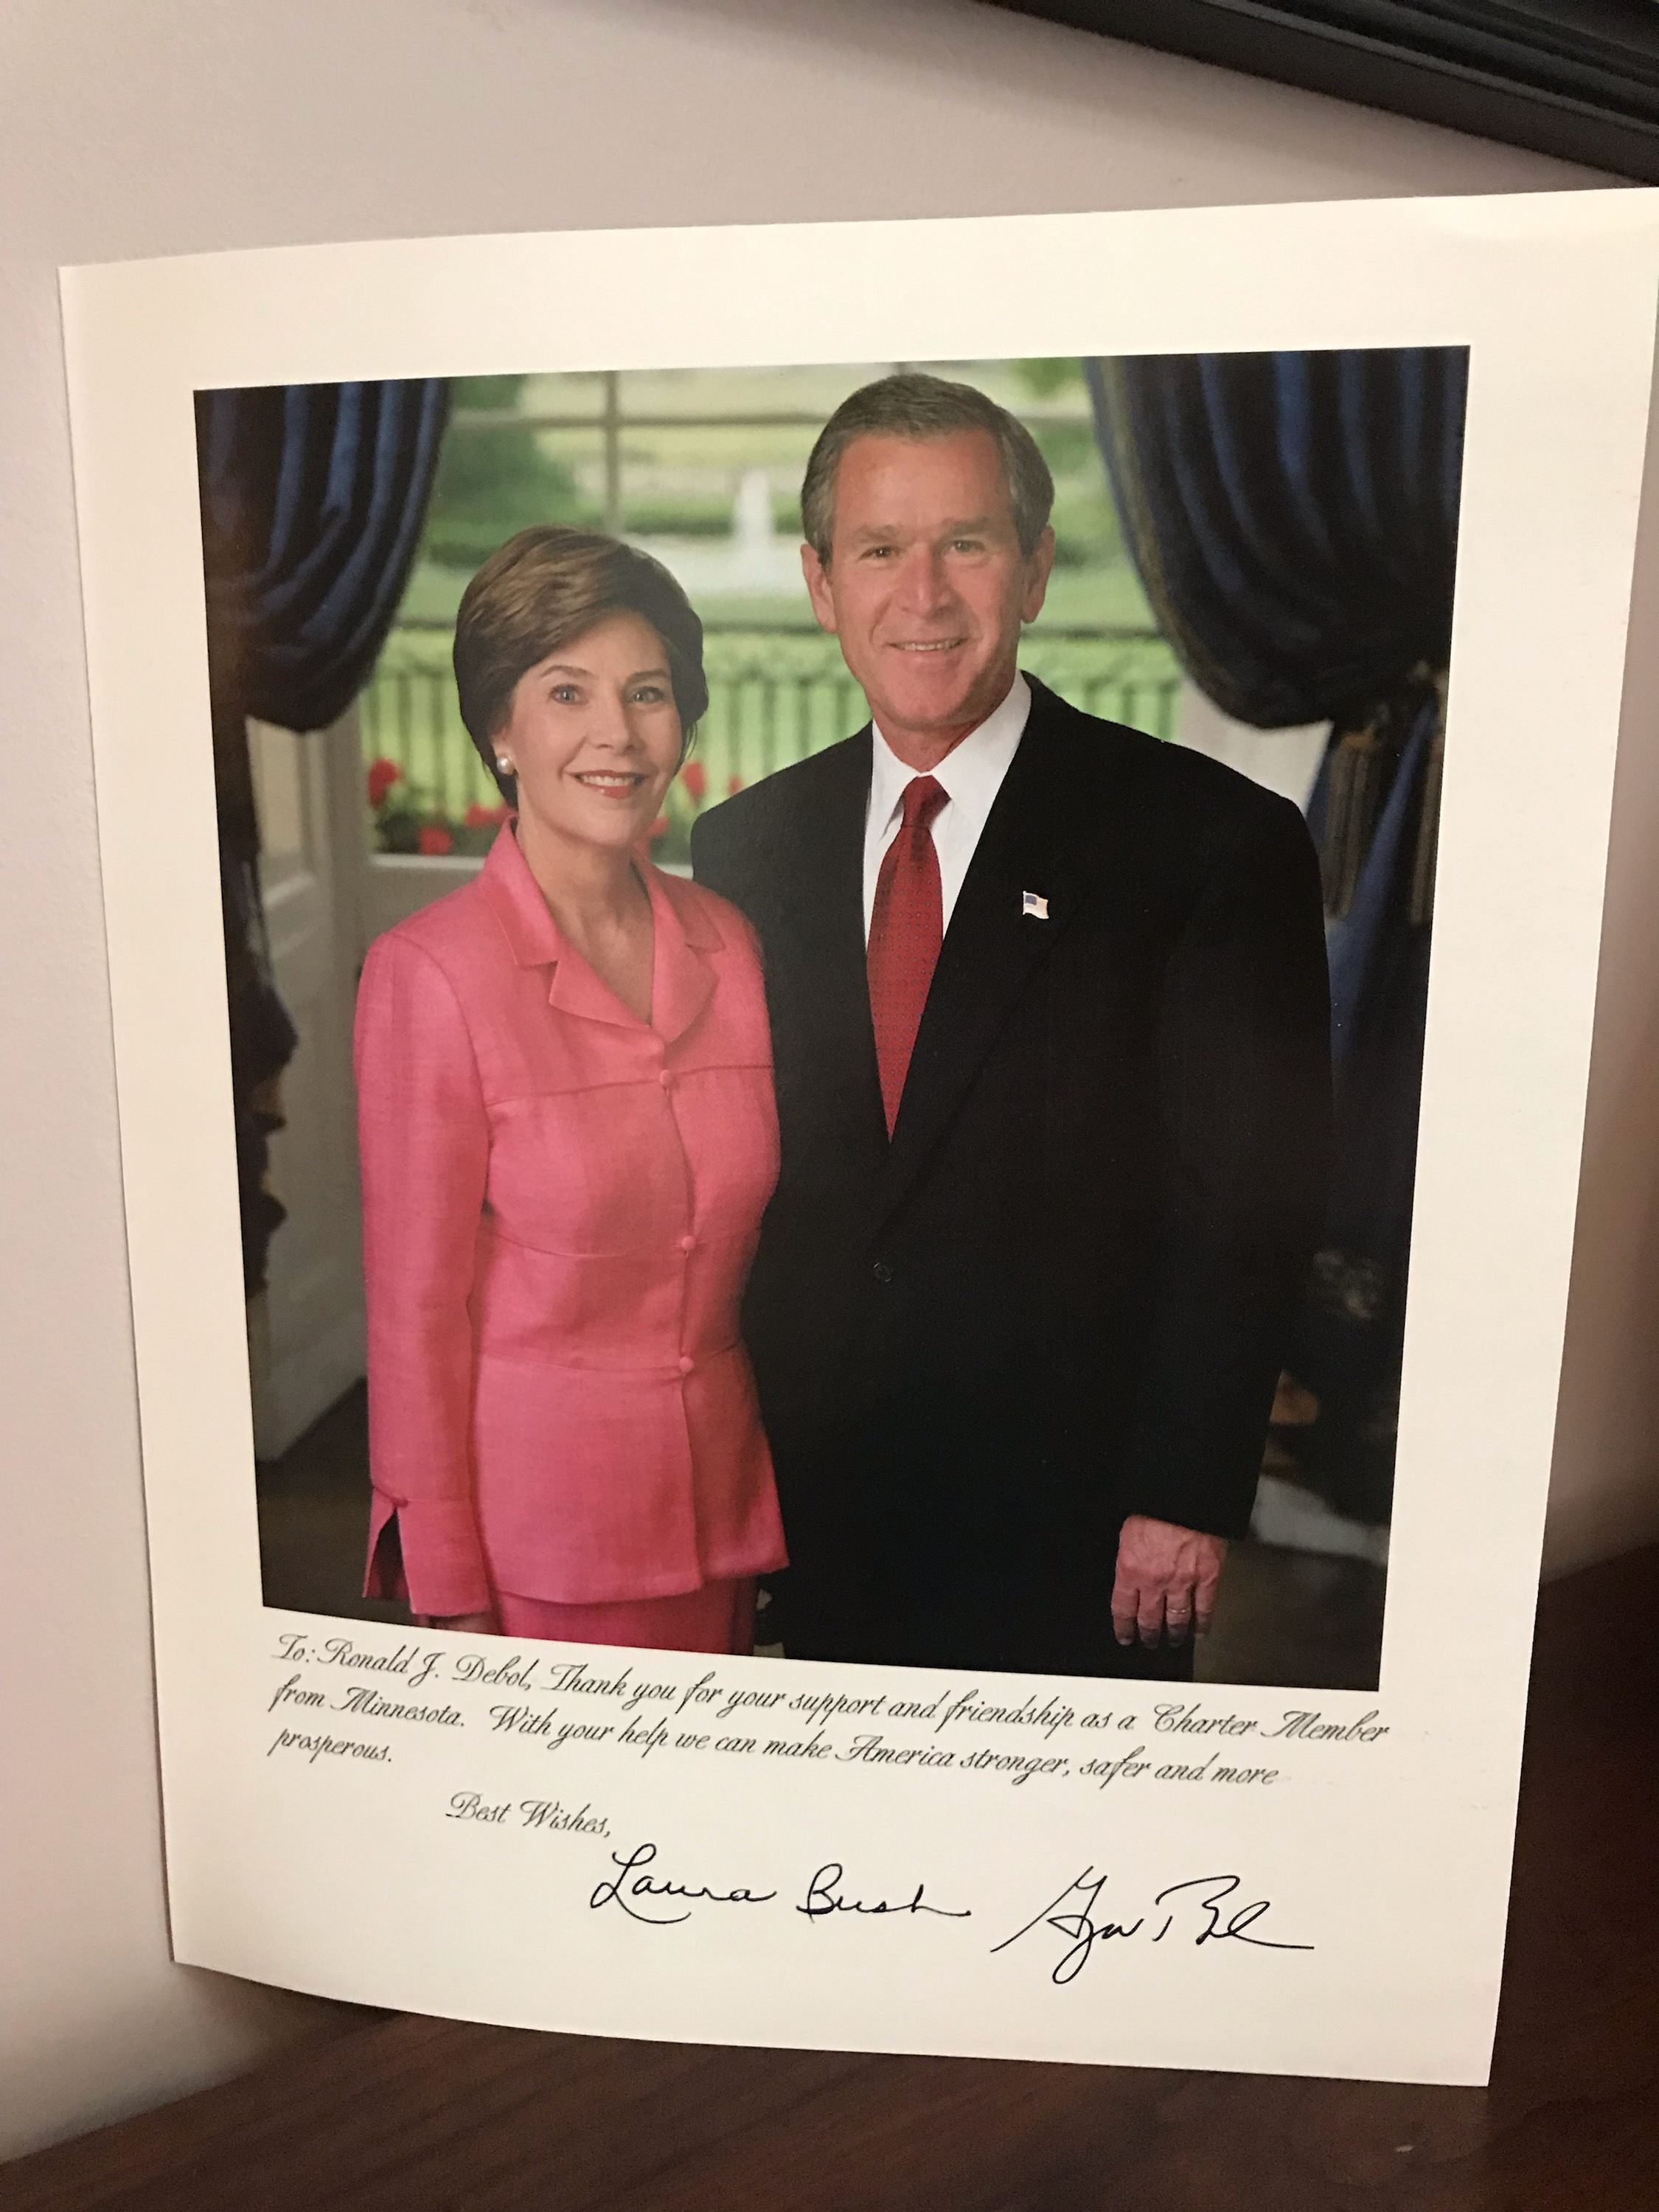 Signed President George W. and Laura Bush Photo